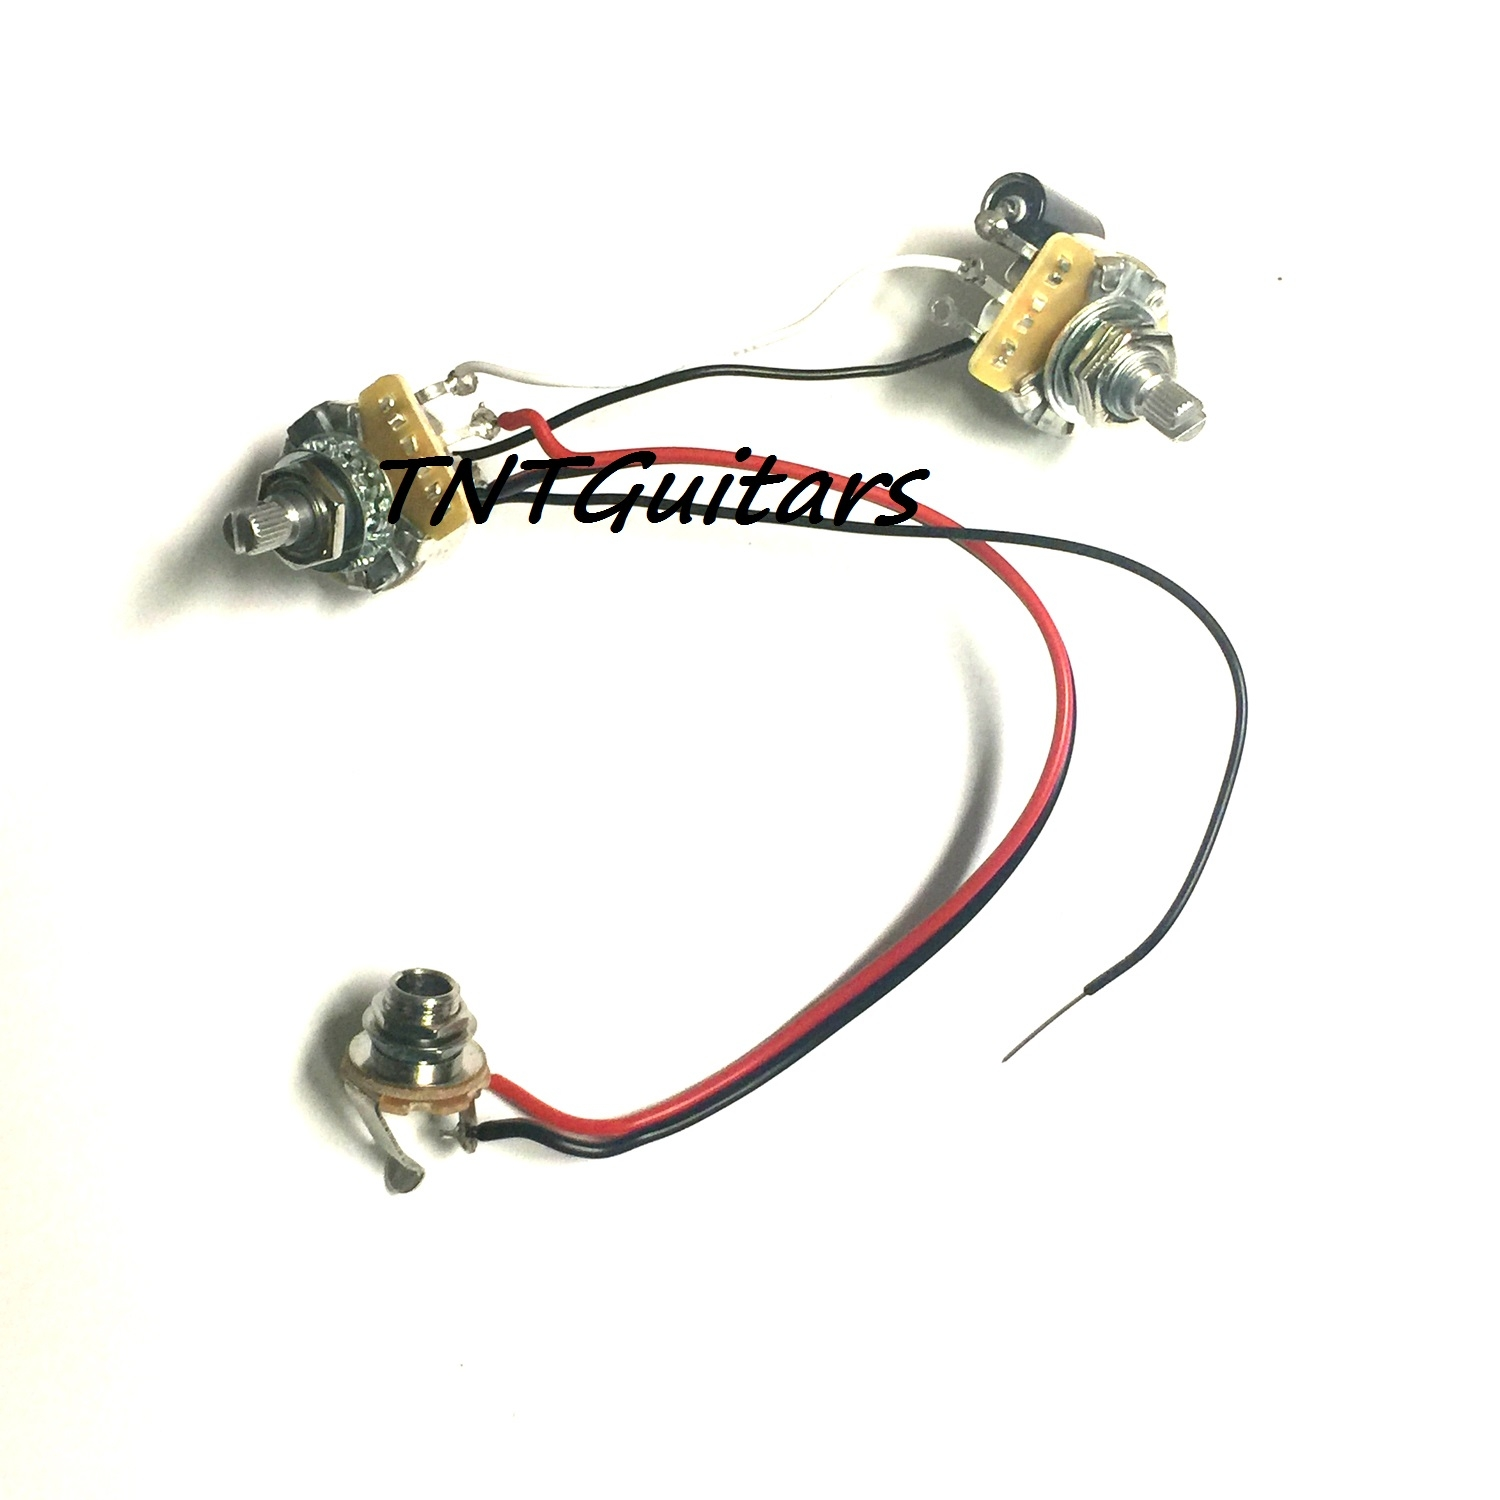 1v1t one pickup wiring harness ~ cts pots 1 vol 1 tone prewired